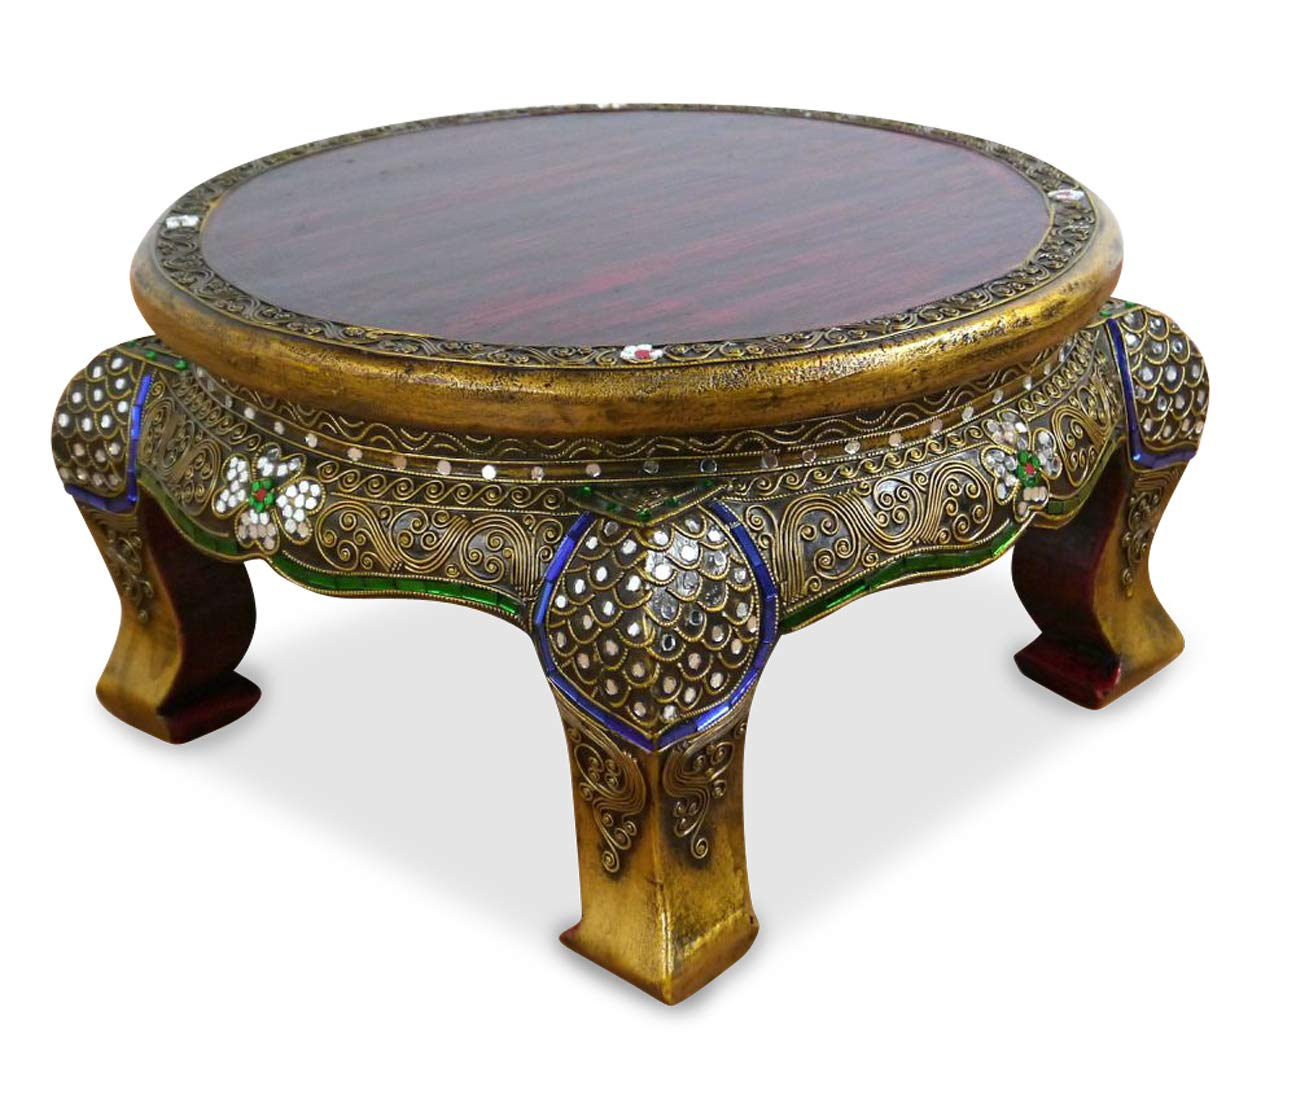 Asian Opium Table, Glass Mosaic Look, Round, Different Sizes, Handmade Thai Furniture (Small) Asia Wohnstudio